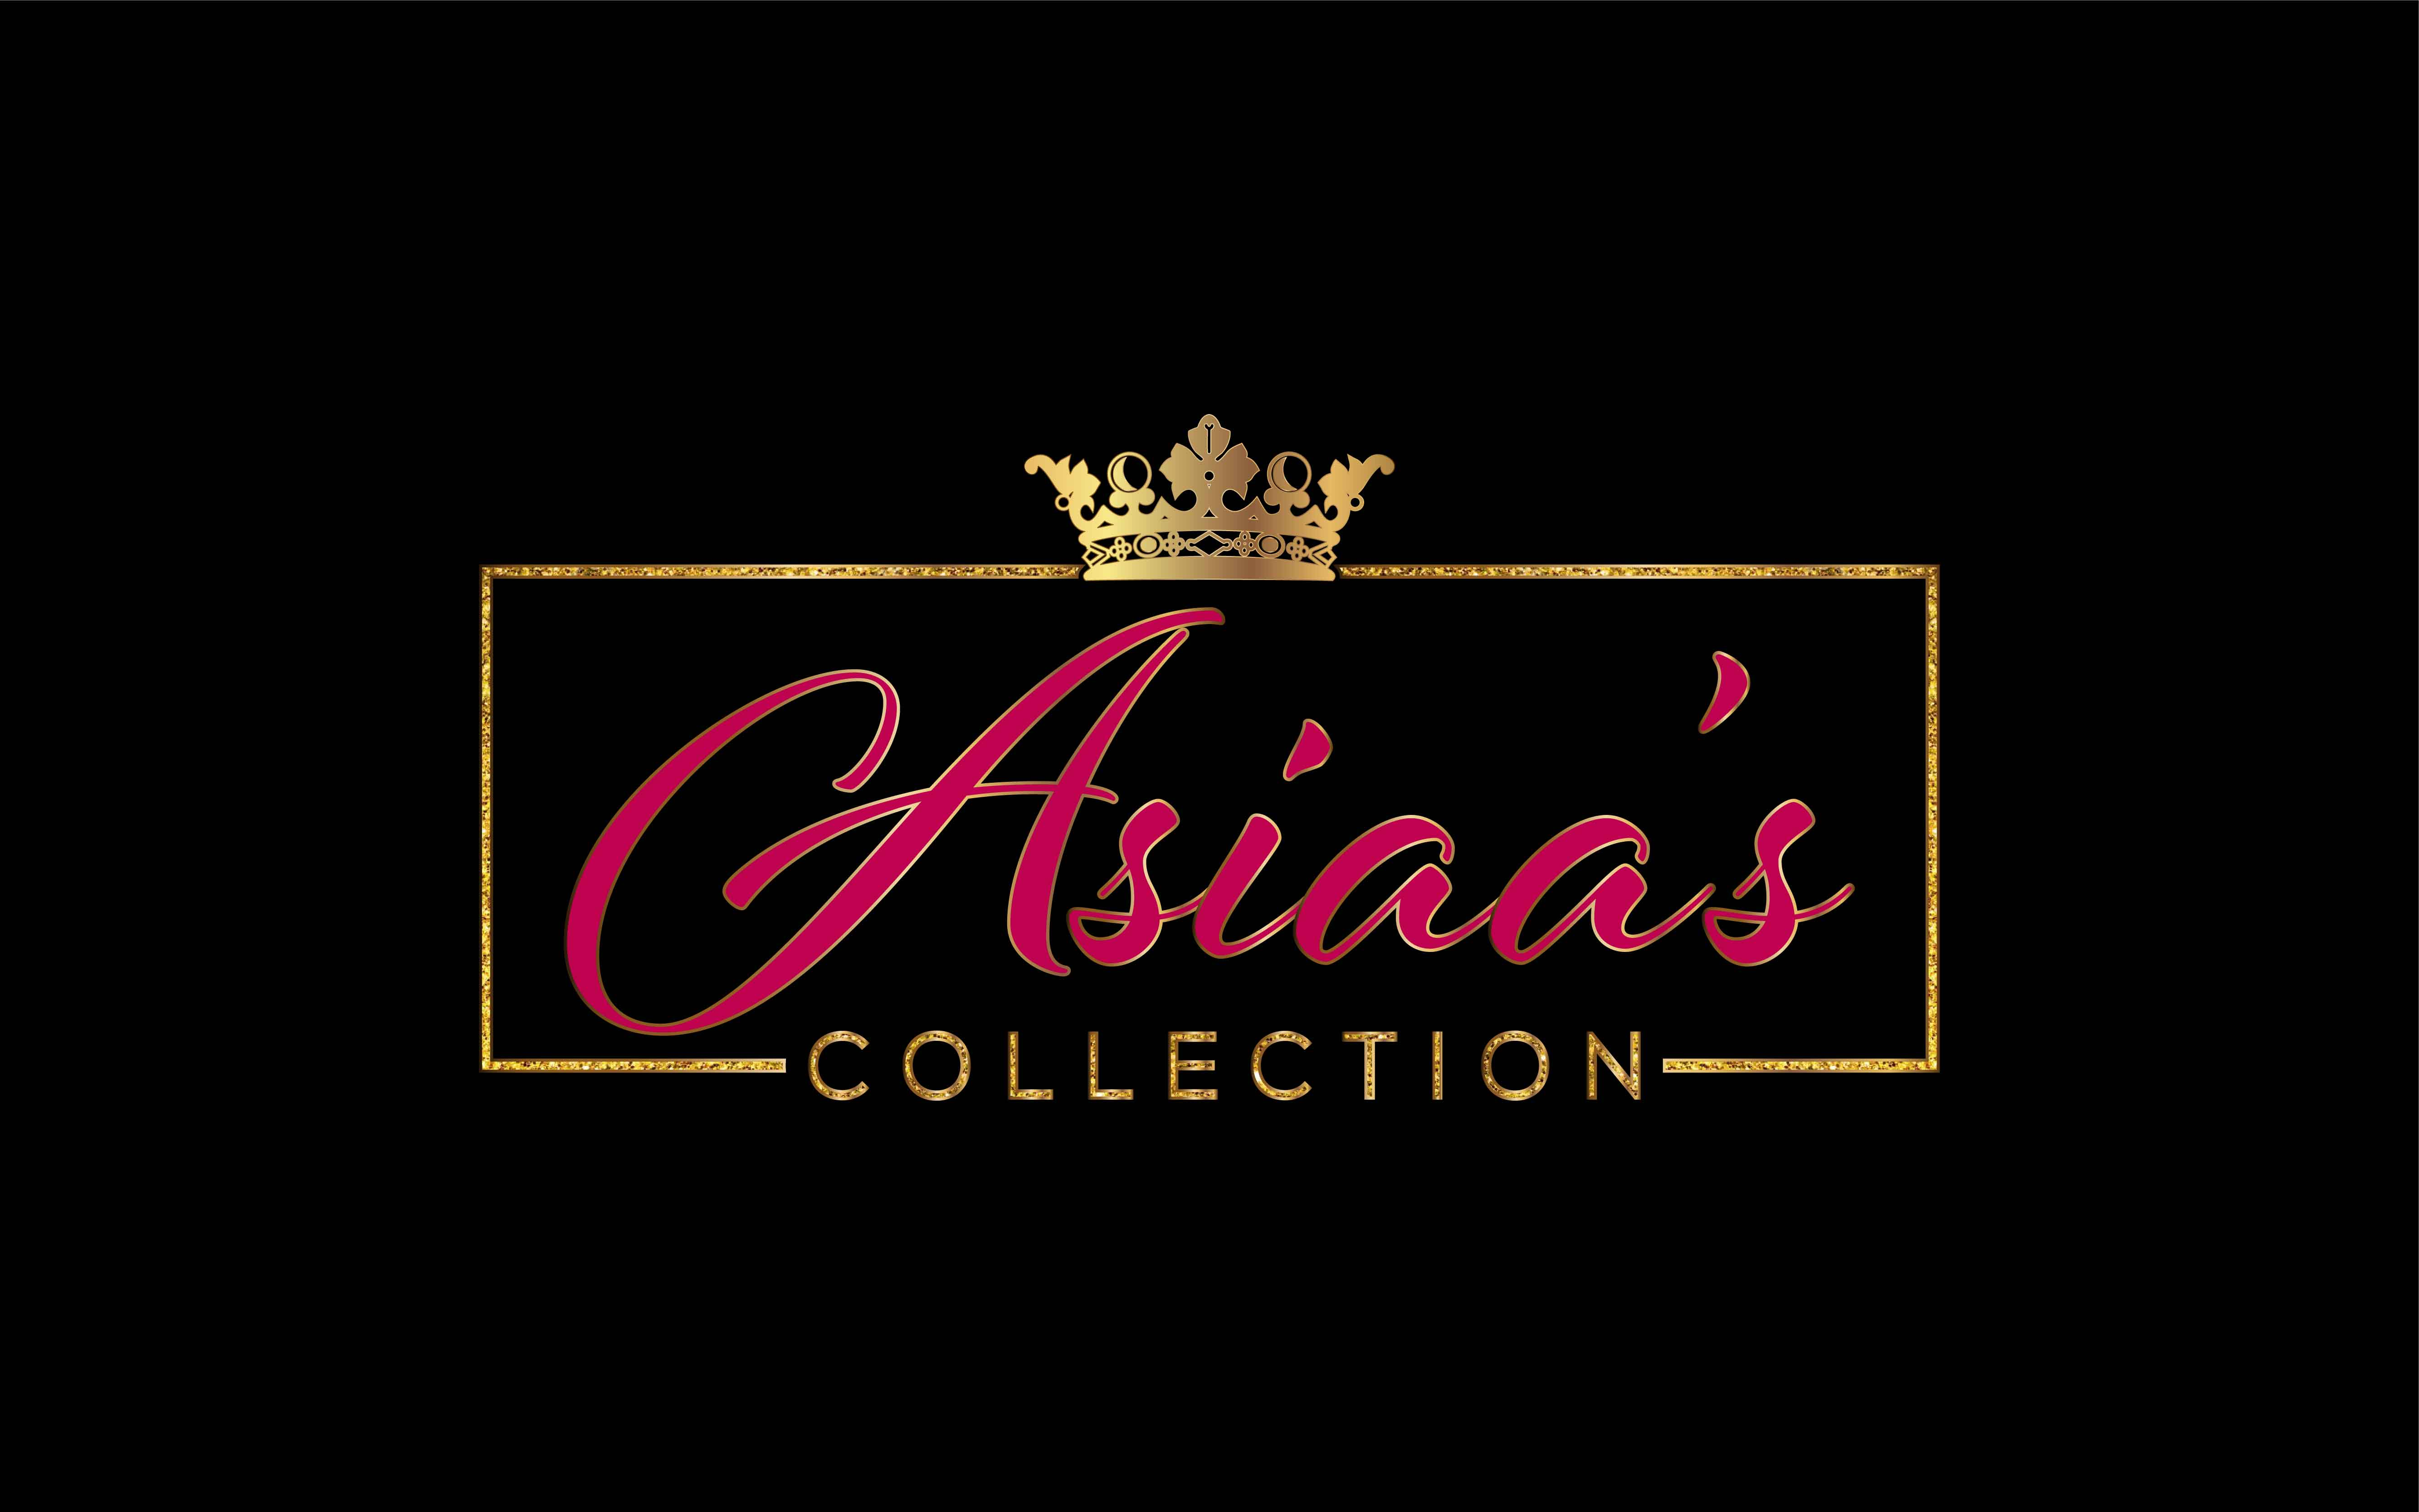 Asiaas collection's account image